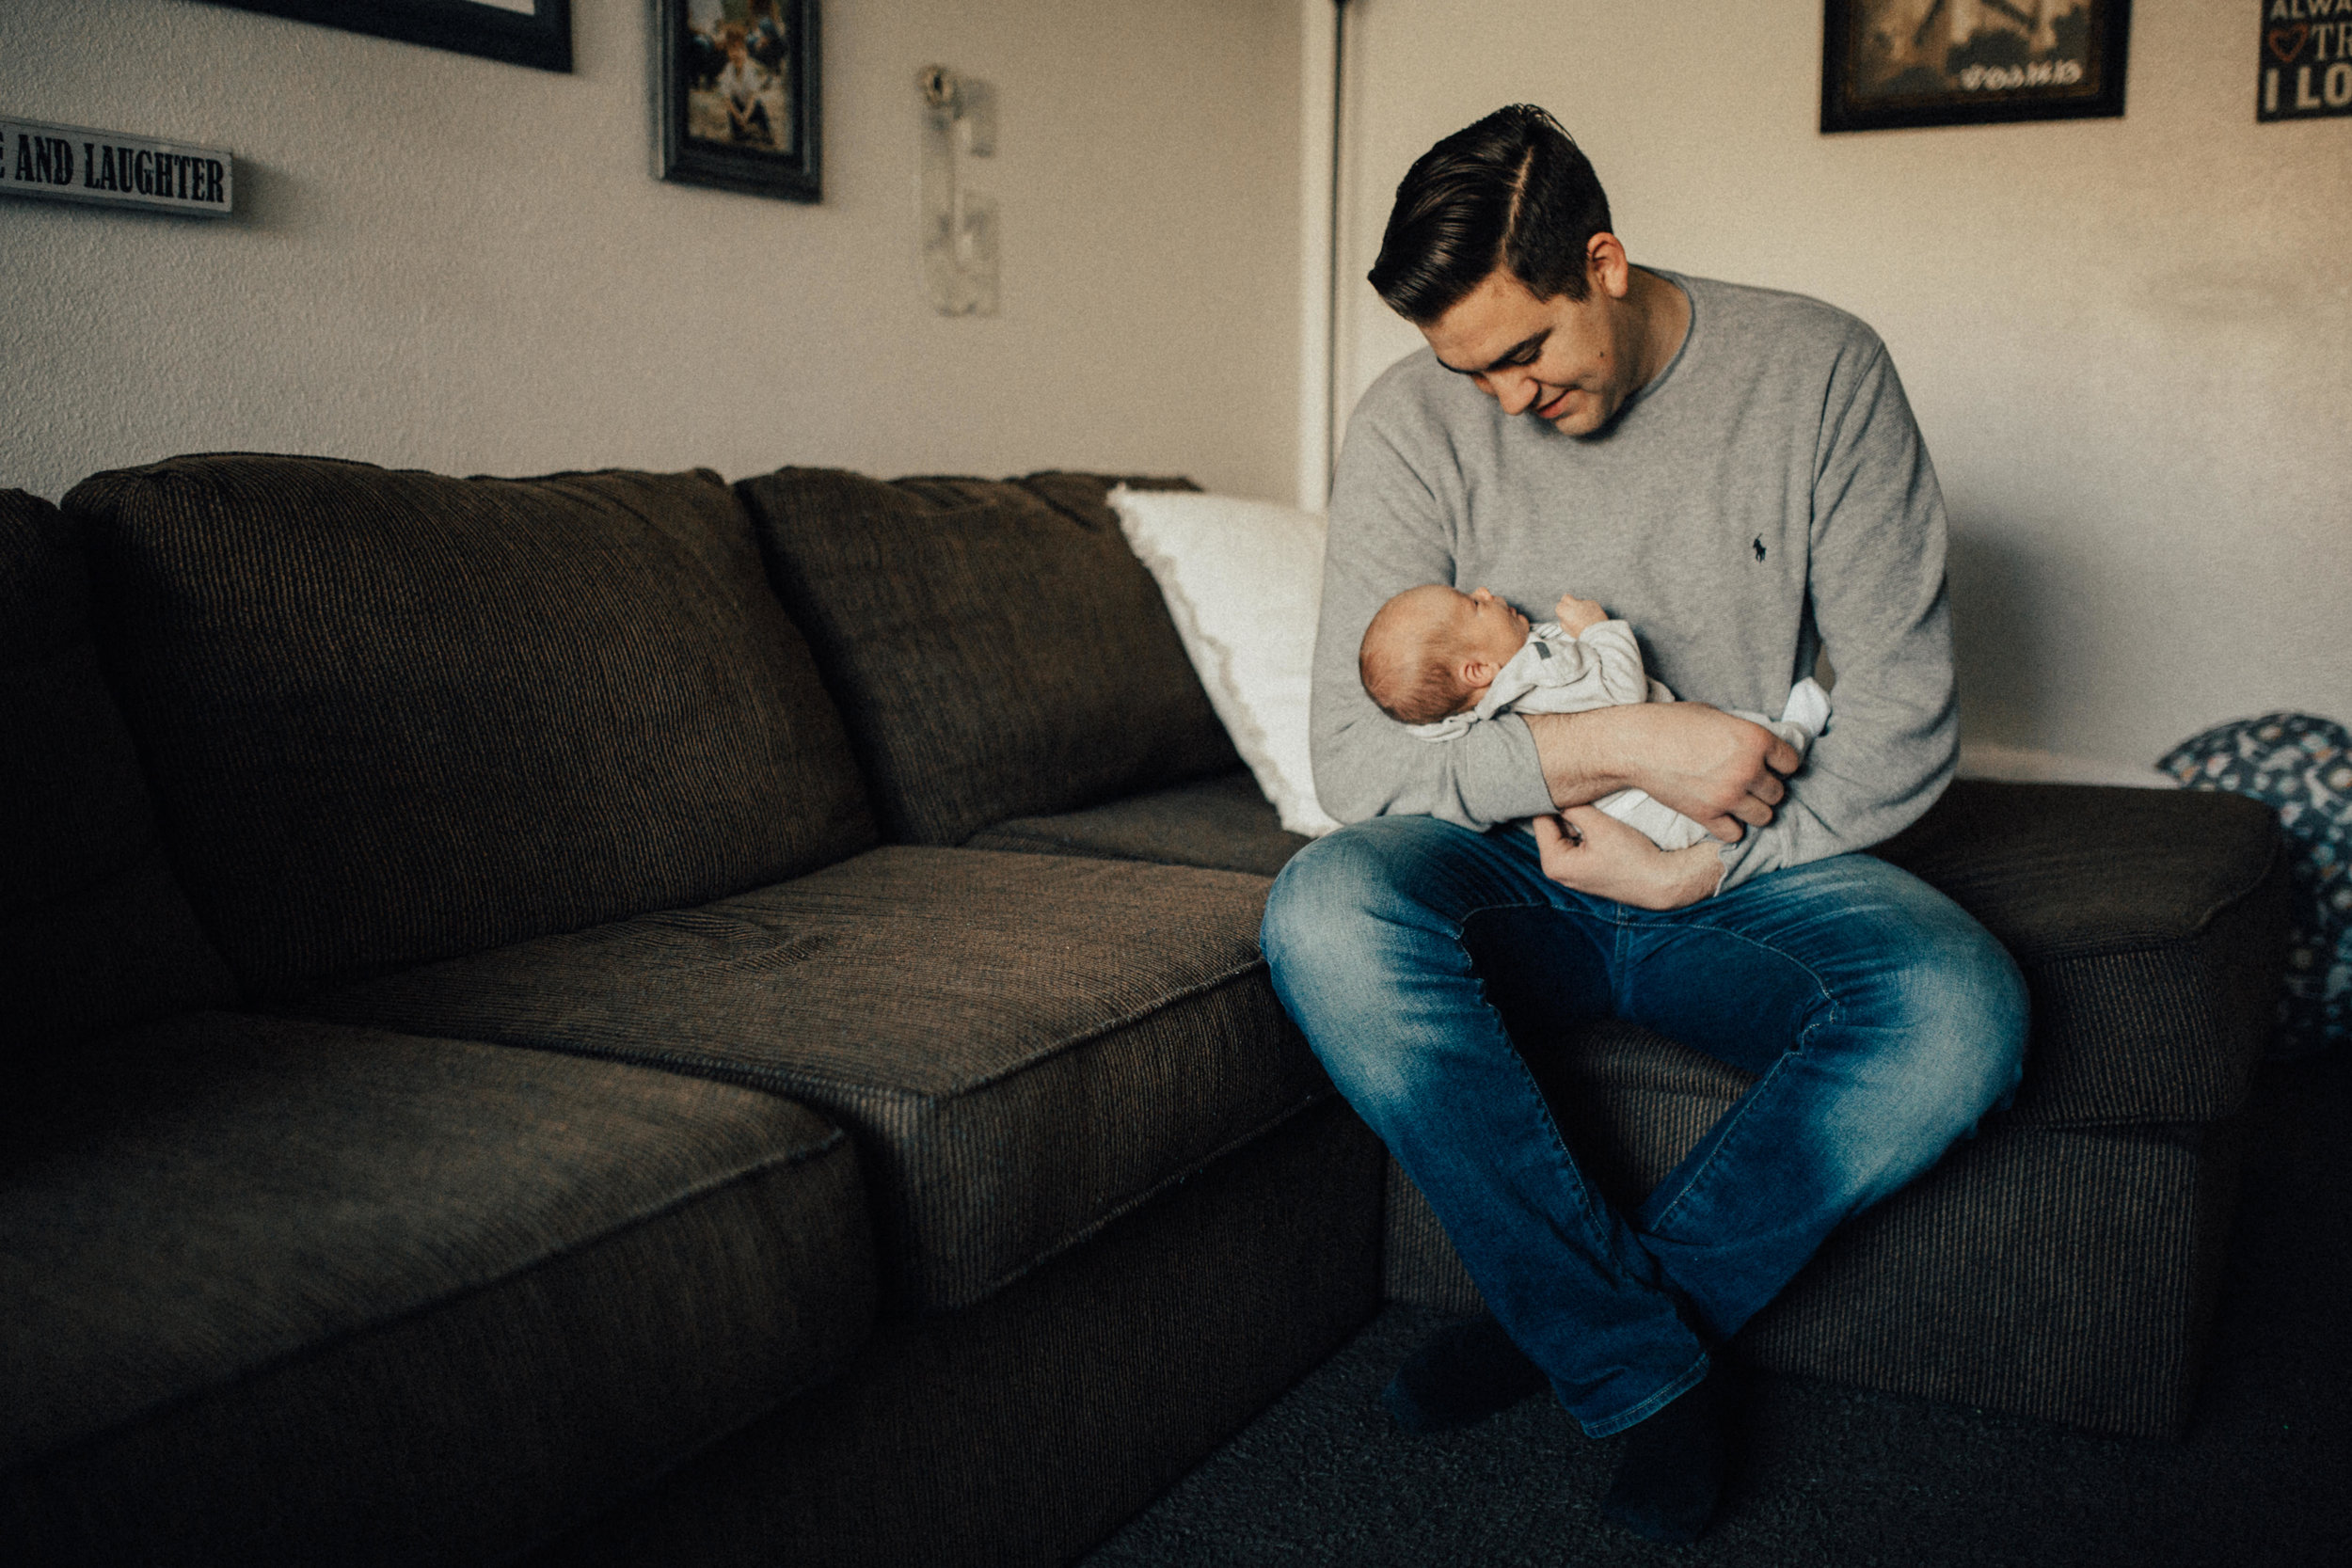 Seattle Newborn Photographer - Lifestyle Newborn Photography - In-Home Family Session - Seattle Lifestyle Photographer - Seattle Family Photographer - In Home Lifestyle Newborn Session - 39